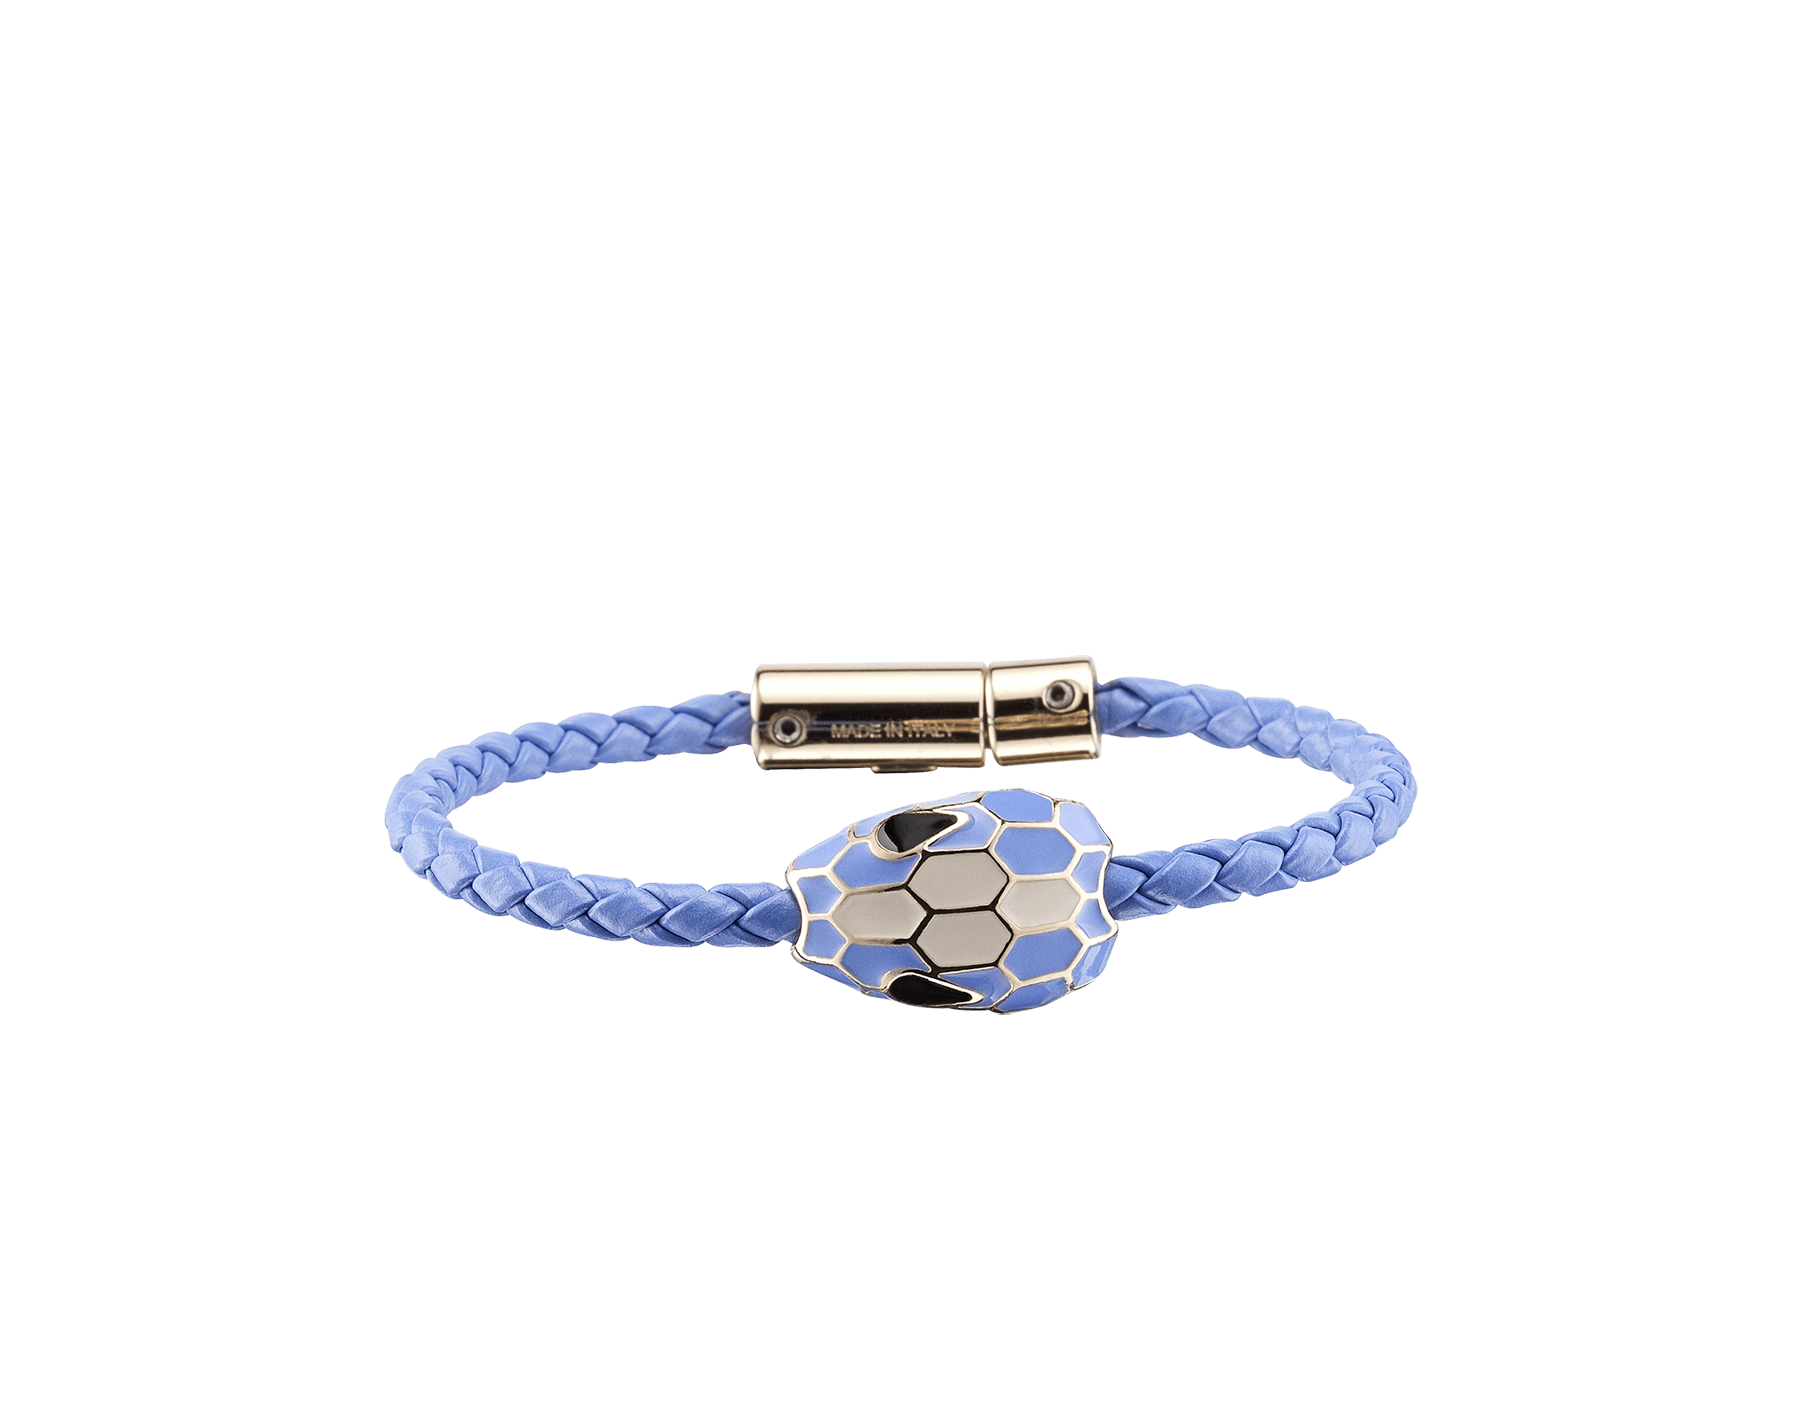 """""""Serpenti Forever"""" bracelet in Lavender Amethyst lilac braided calf leather and light gold-plated brass snake body-shaped chain with the alluring snakehead charm in Lavender Amethyst lilac and white agate enamel, and black enamel eyes with a magnetic clasp closure. SerpBraid-WCL-LA image 1"""